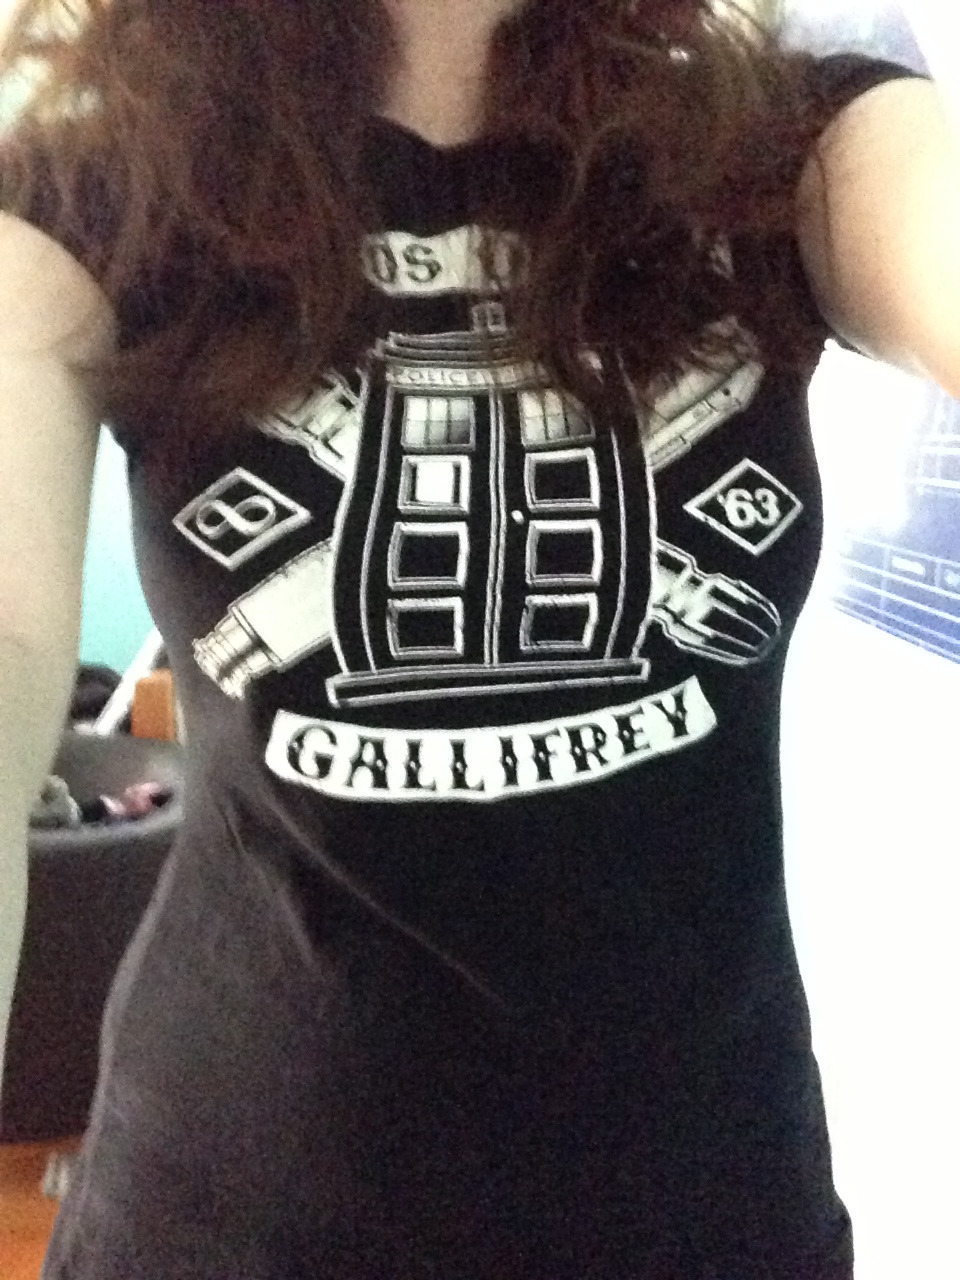 eggs-ter-min-nate:  Put on one of my DW tshirts for the occasion